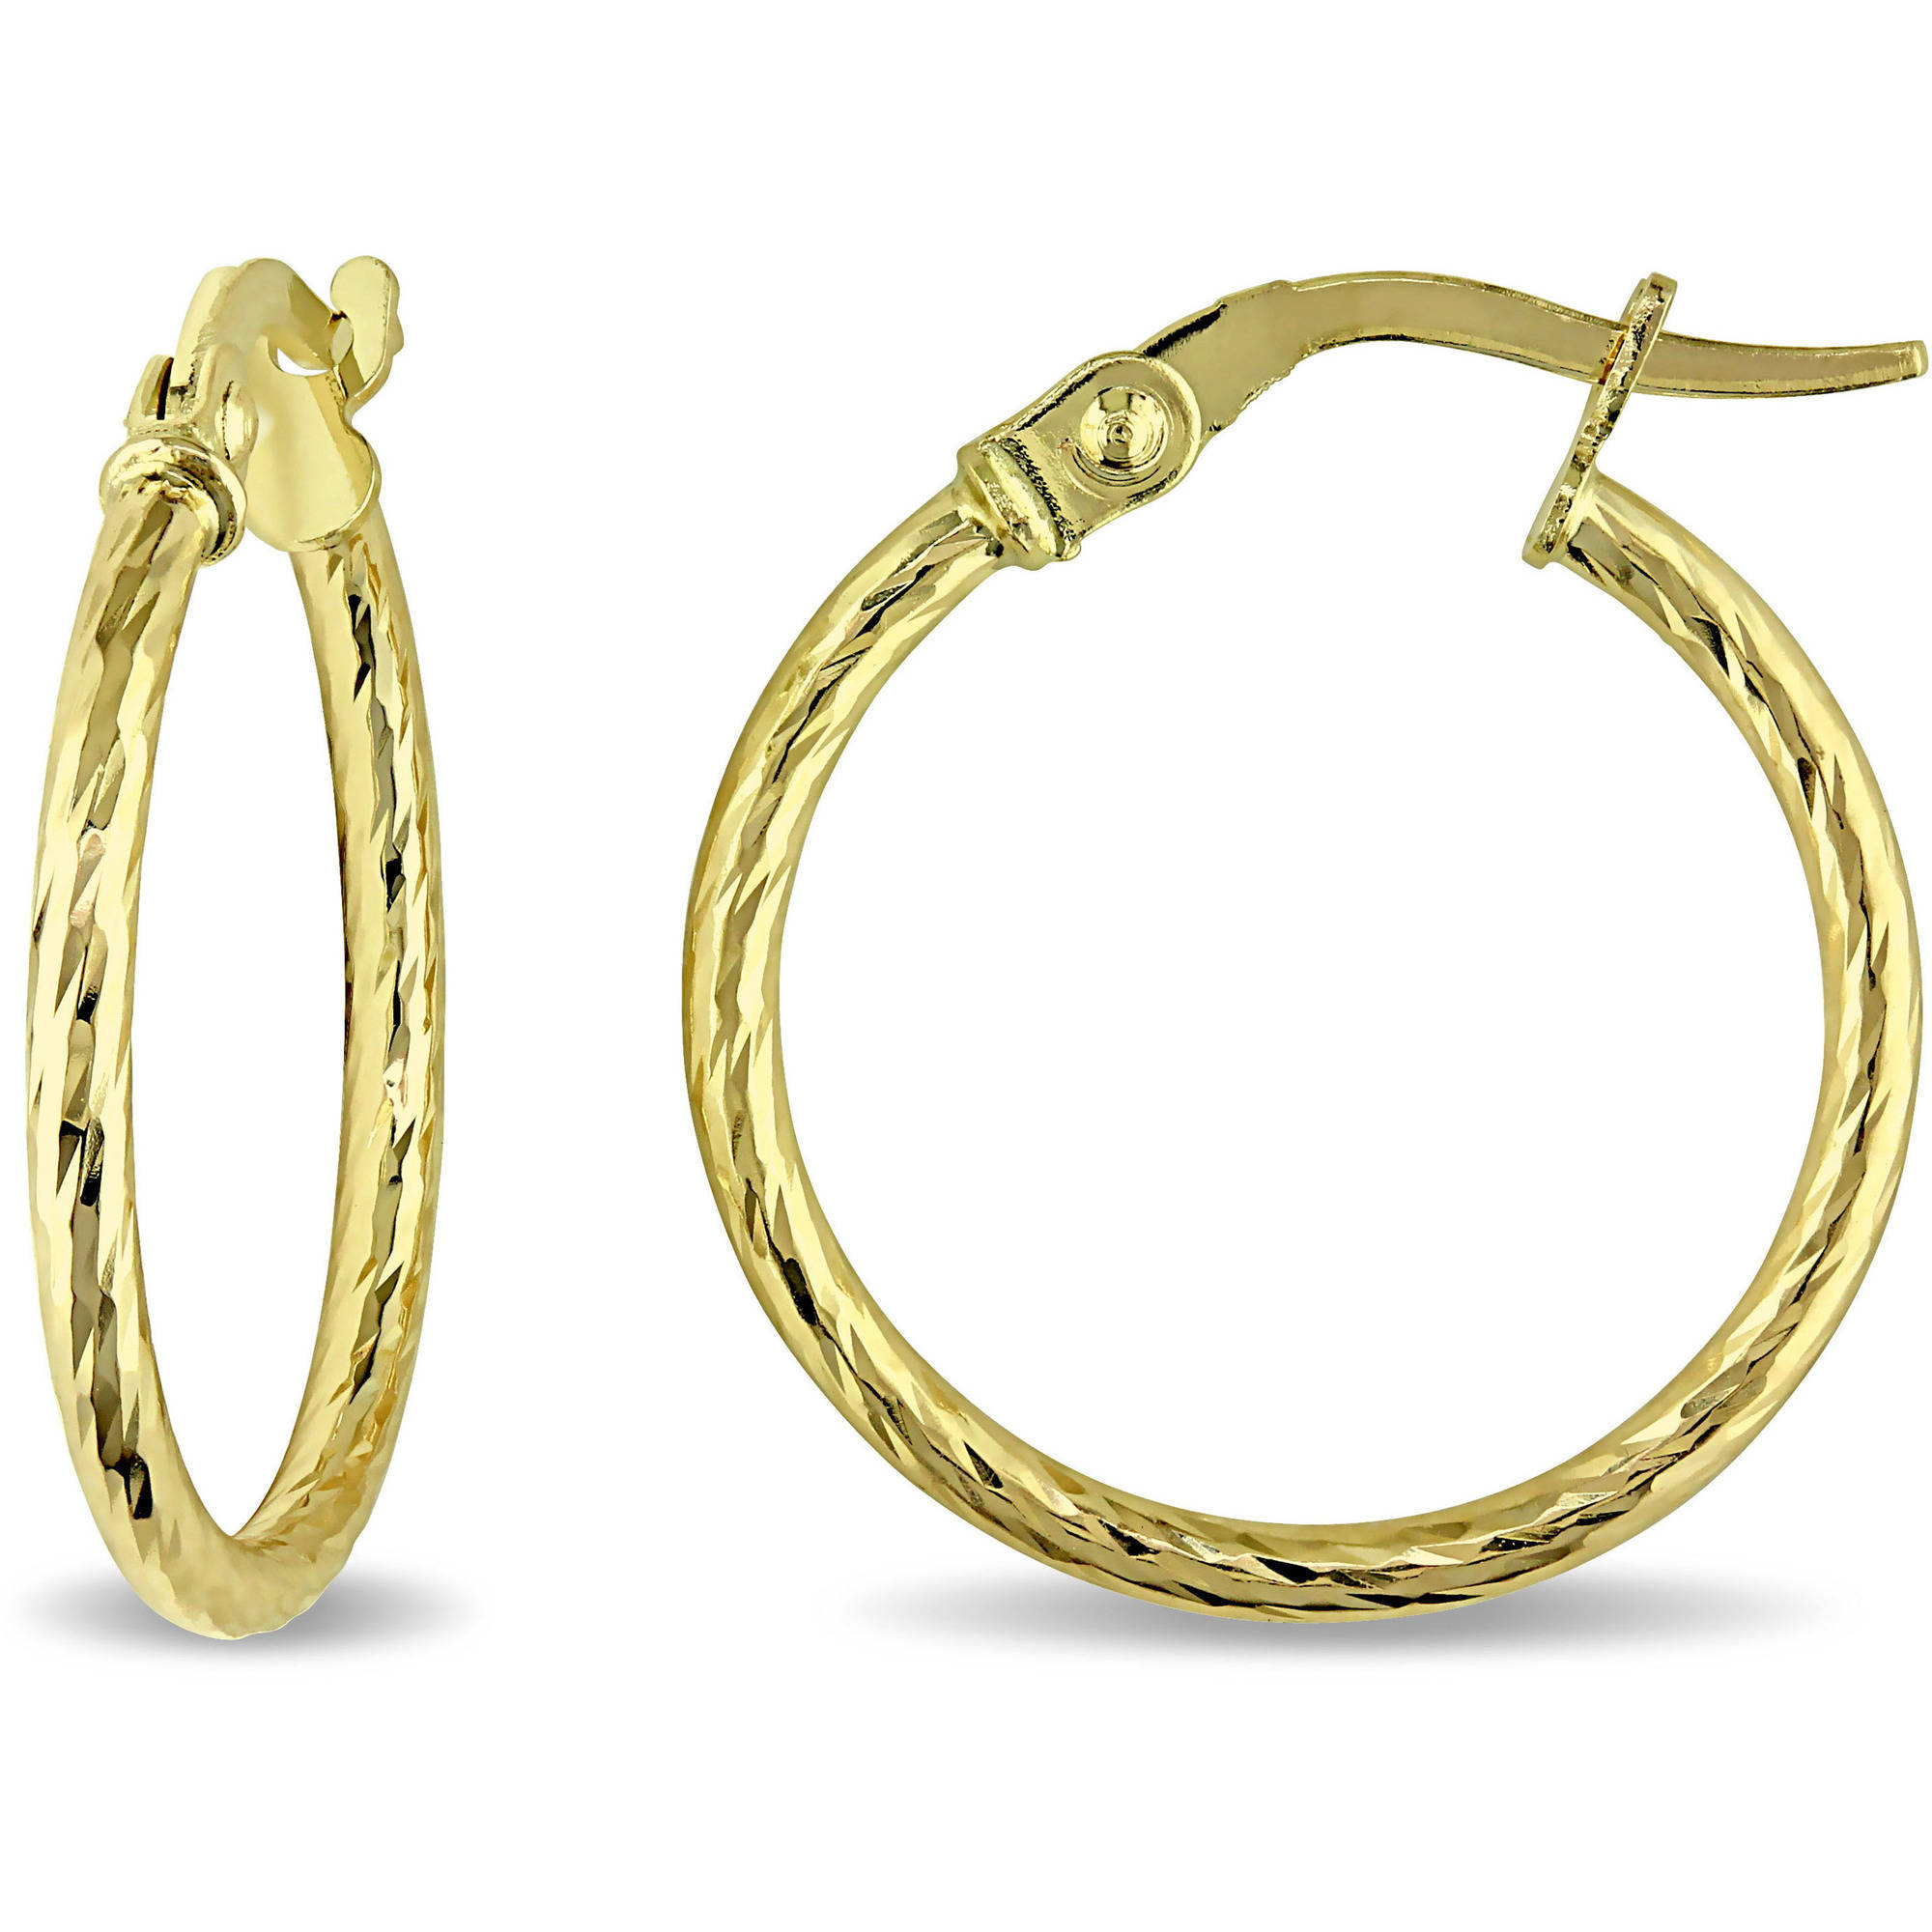 10kt Yellow Gold Twisted Hoop Earrings